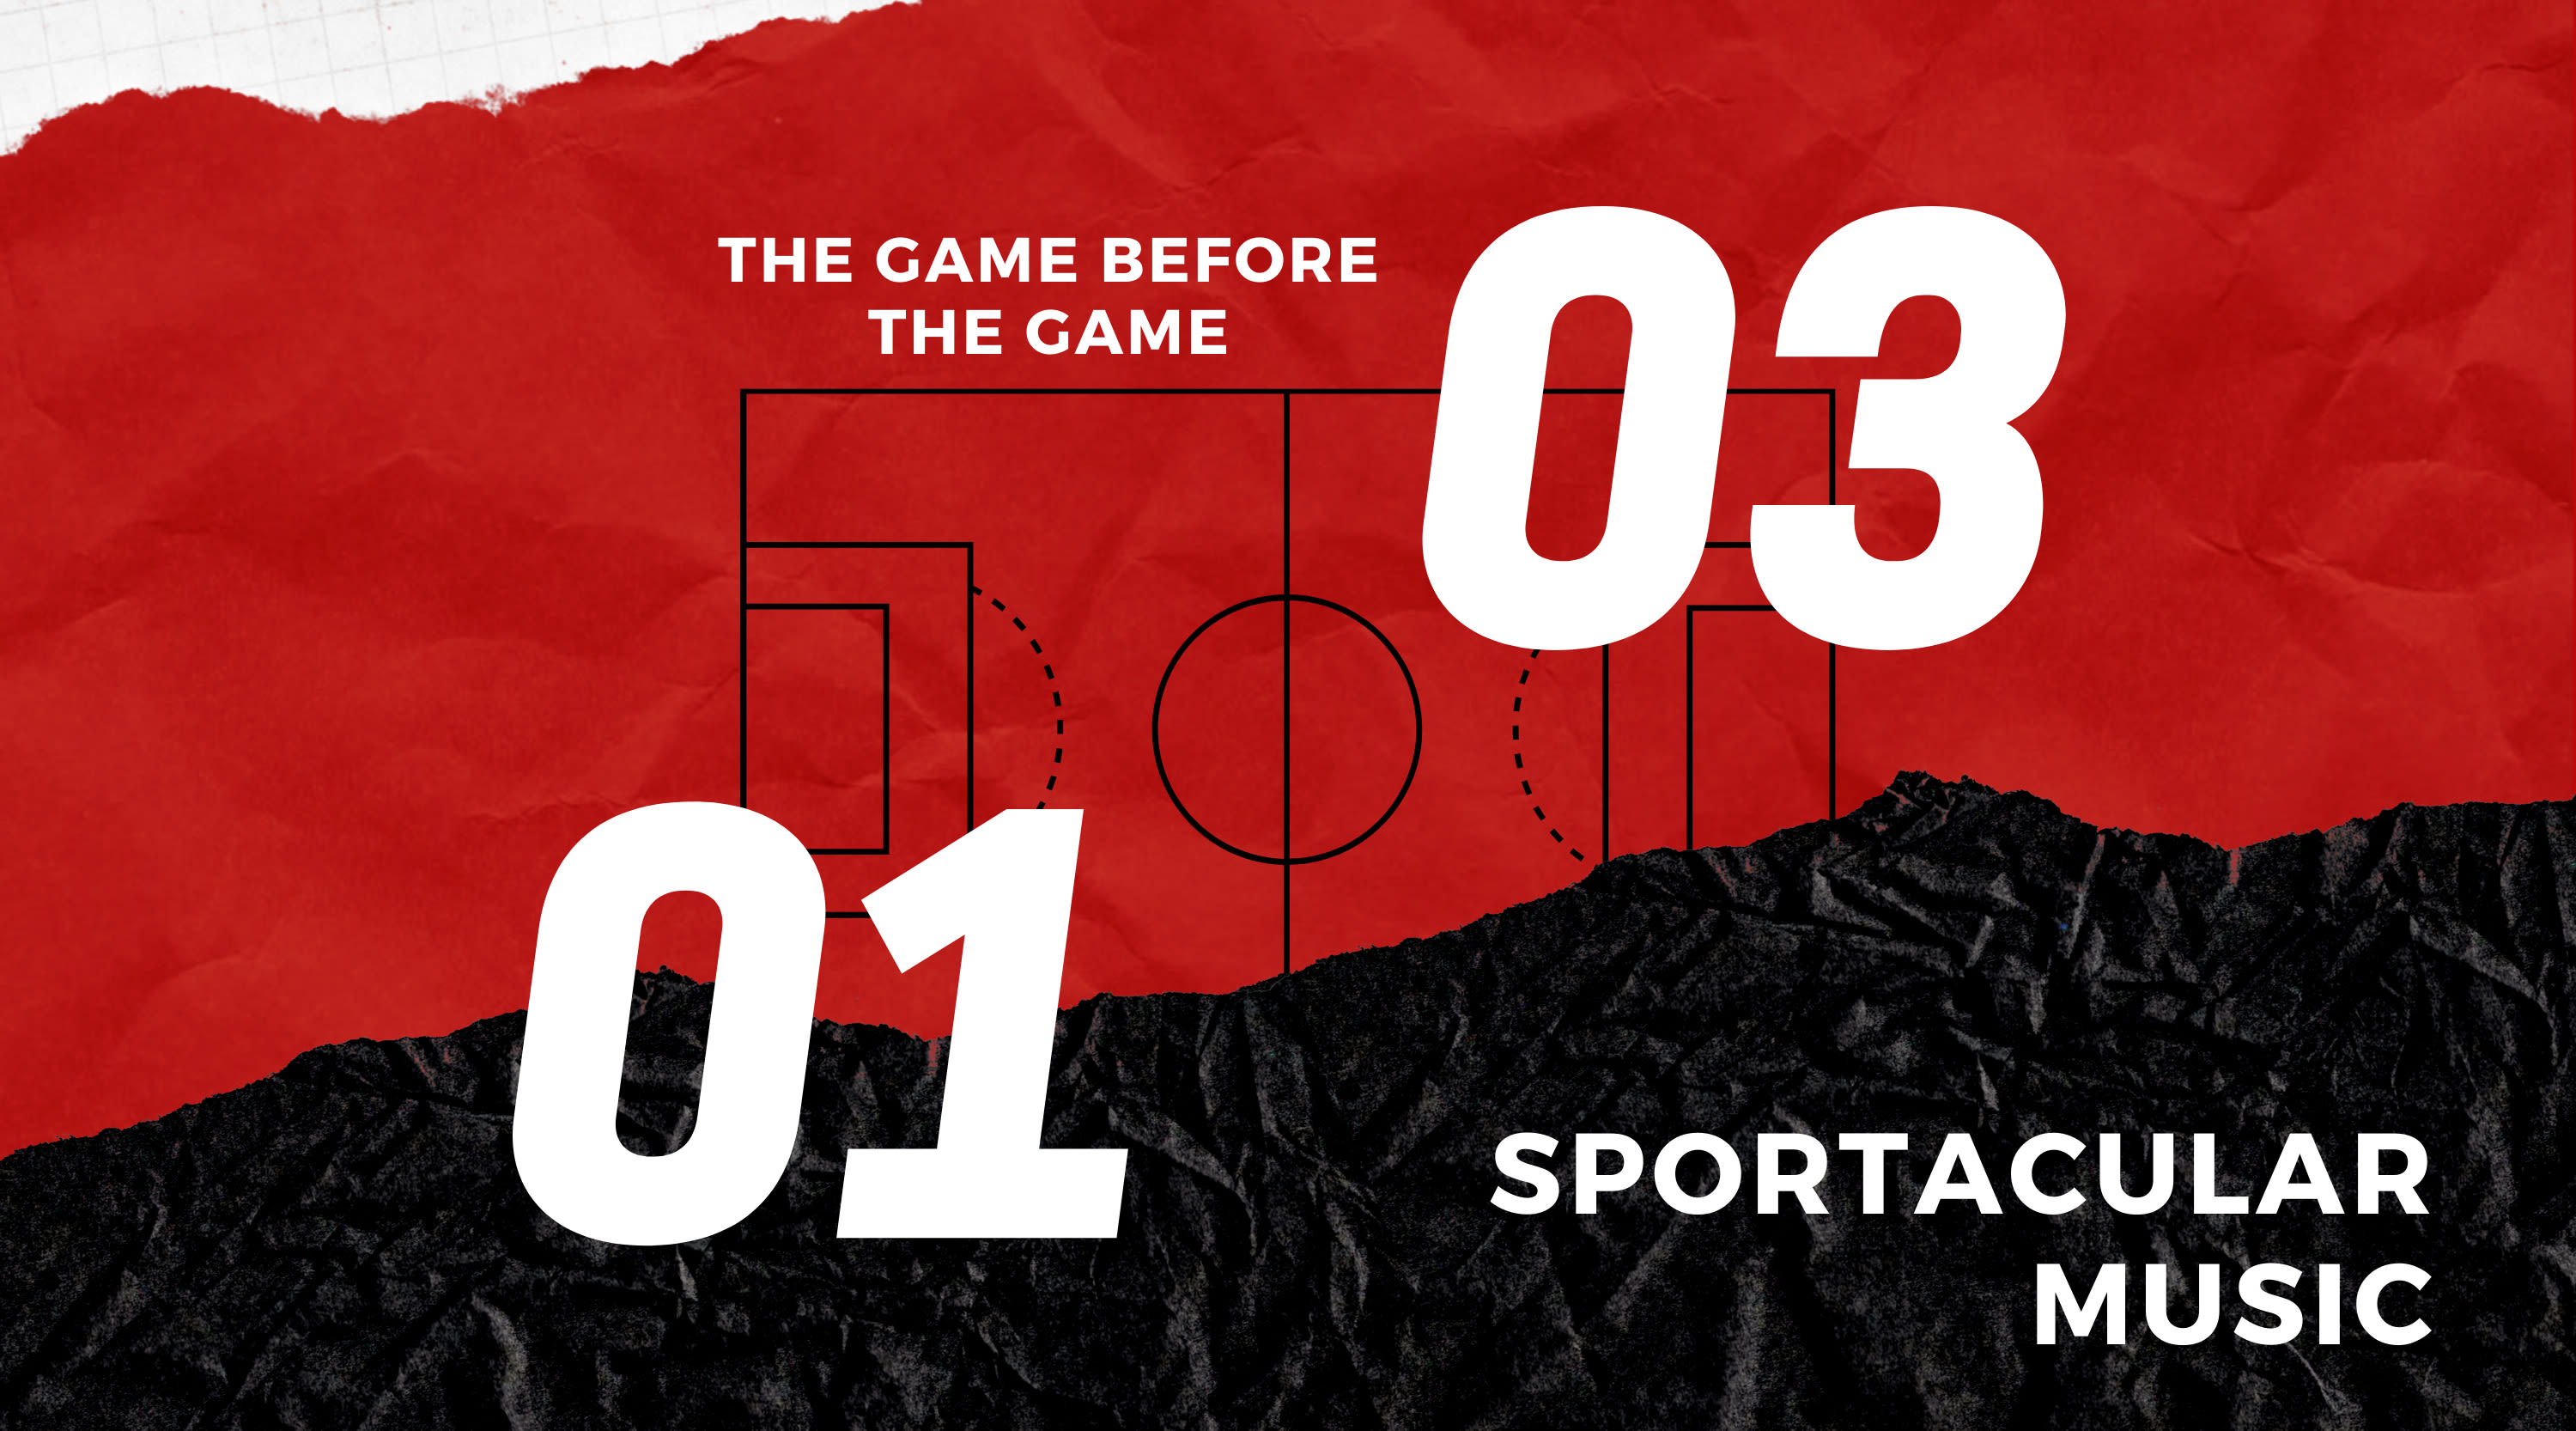 Sportacular - The Game Before The Game